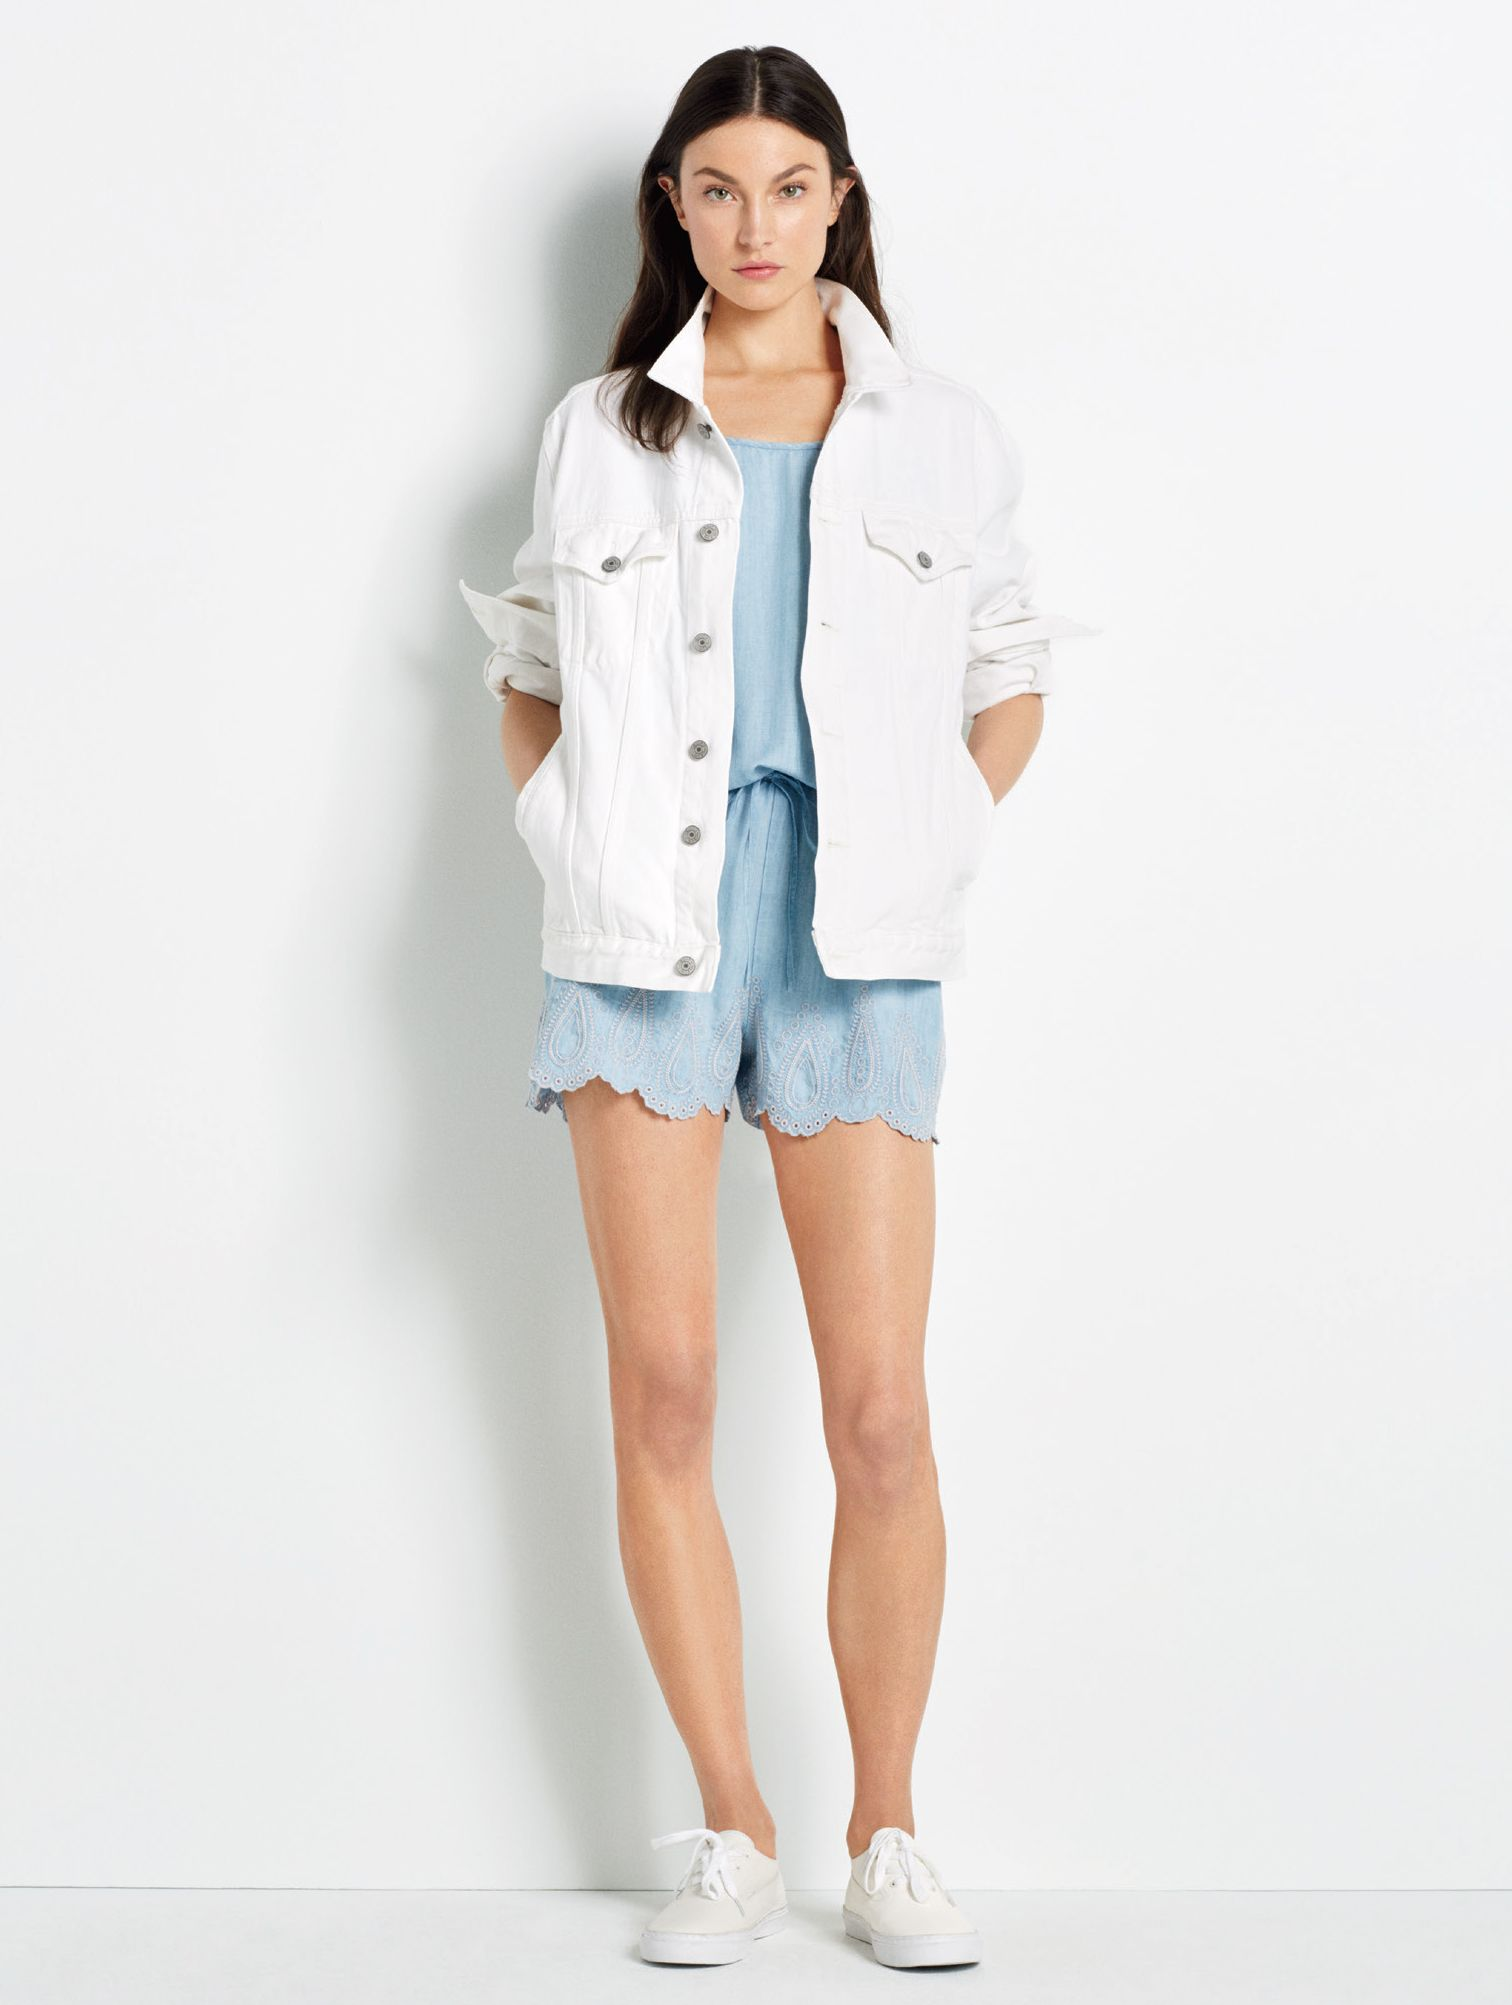 46ca18c85099 ABBIE DE CASTRO DENIM DESIGNER GAP WOMENS DENIM SUMMER 2016 LOOKBOOK ...